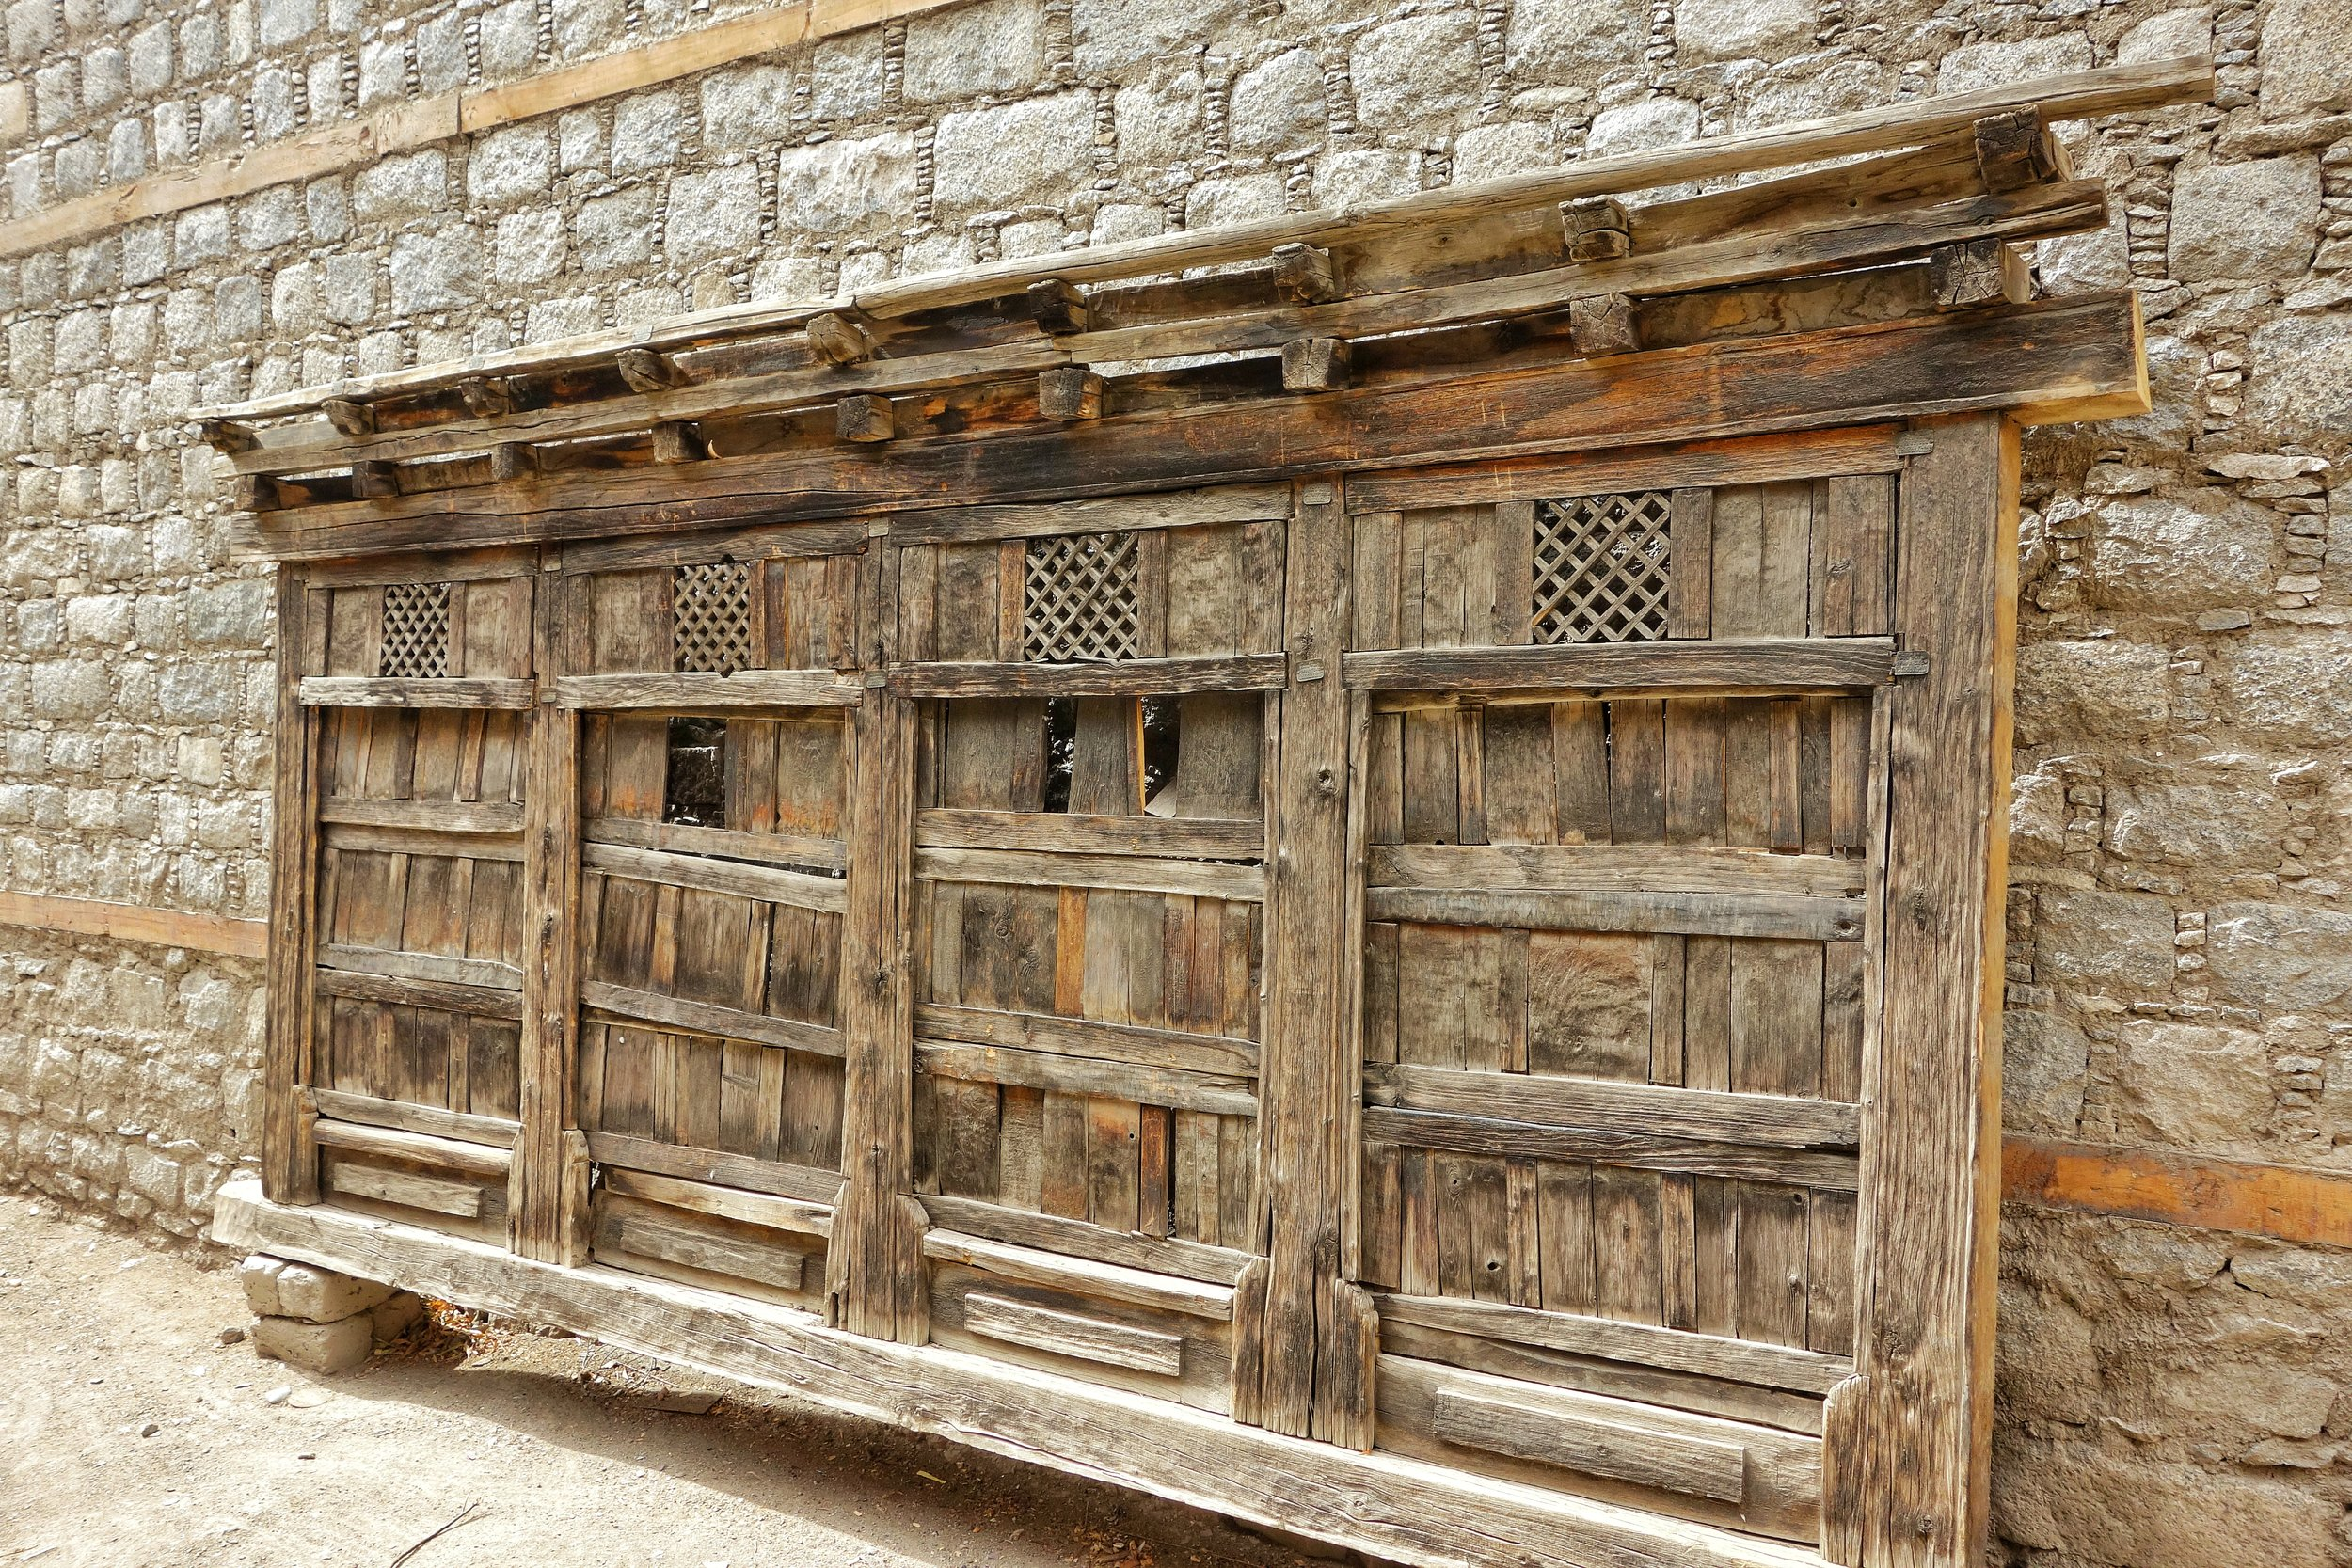 An old Window frame from Ladakh